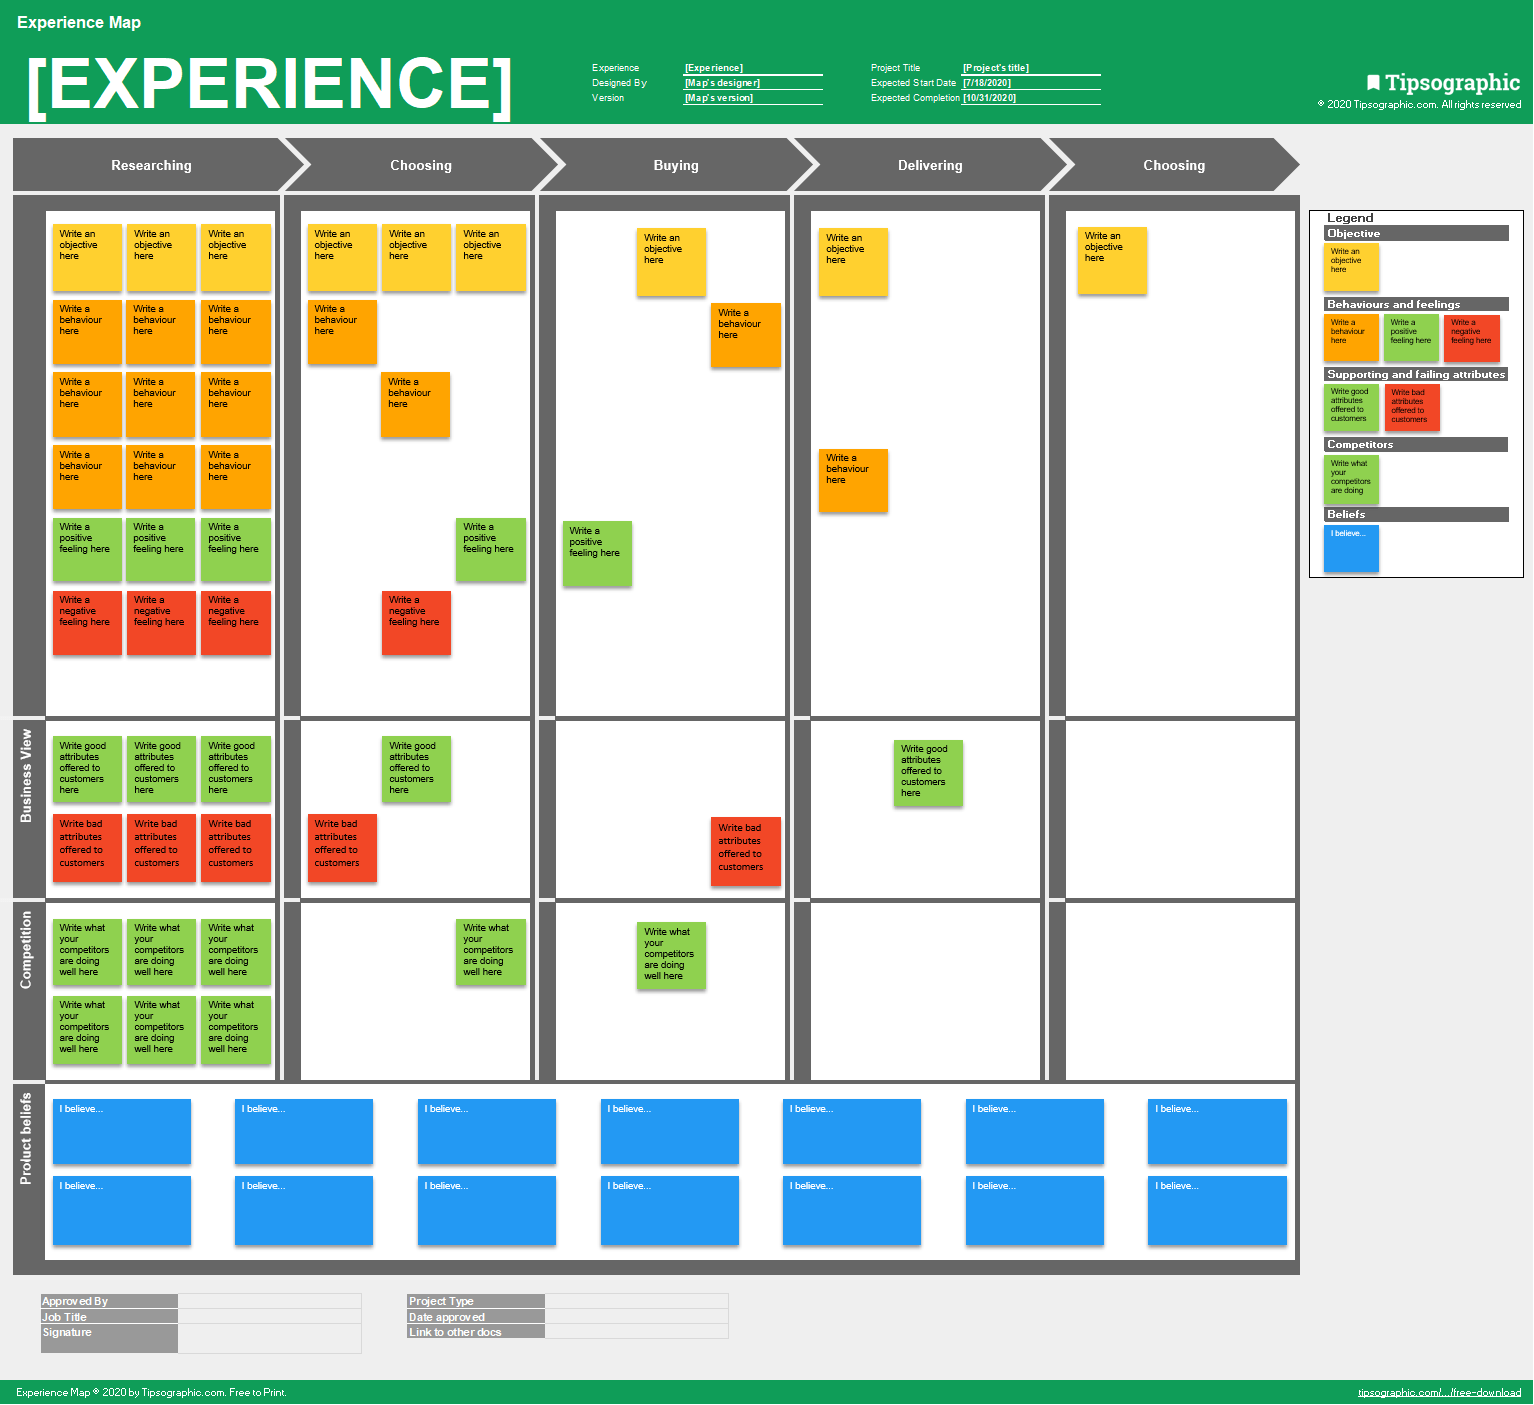 Download The Experience Map Tipsographic